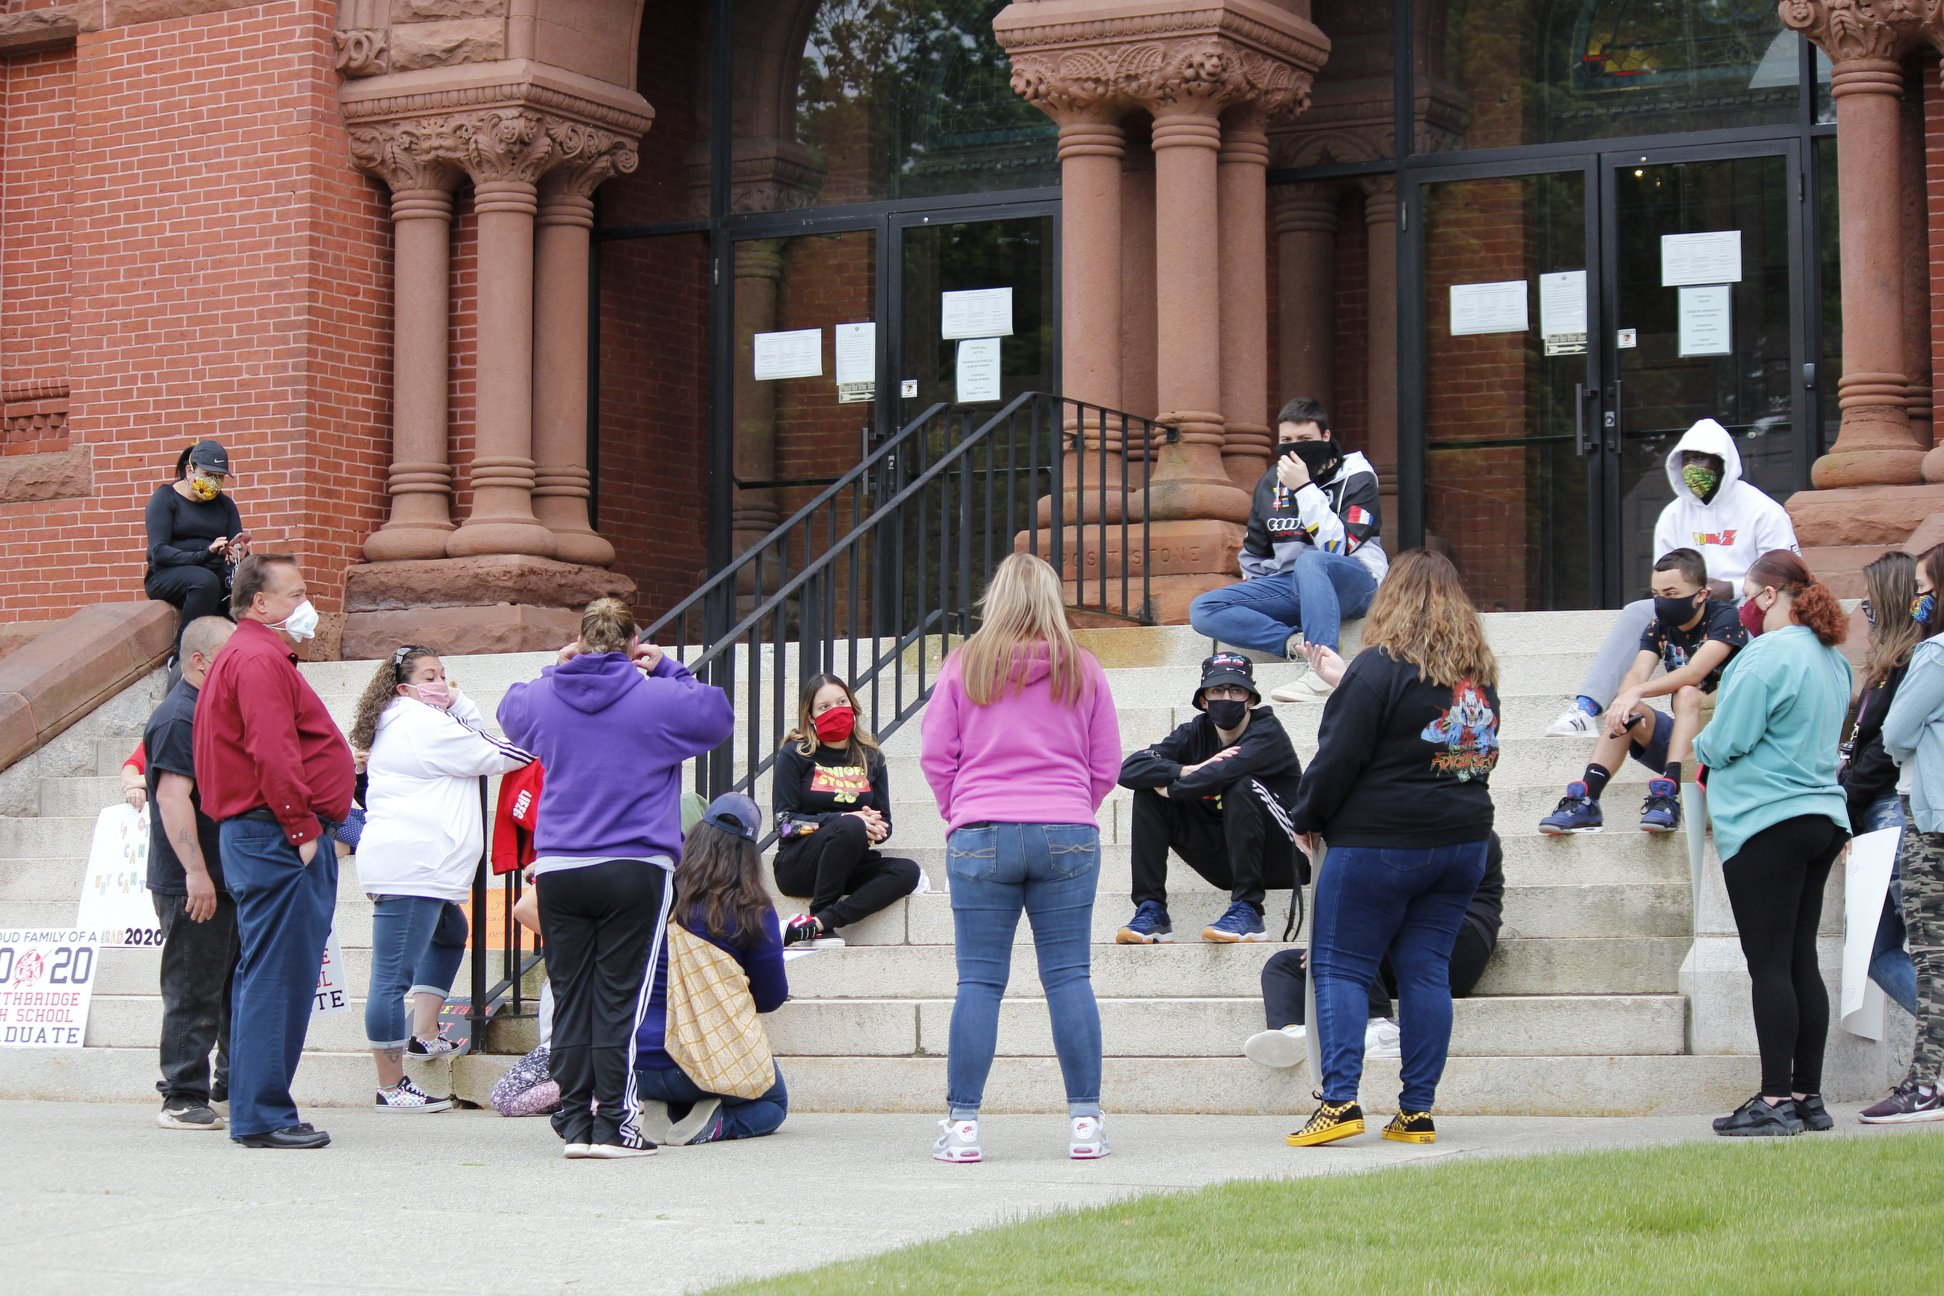 Protesting students lay out alternative to graduation plans